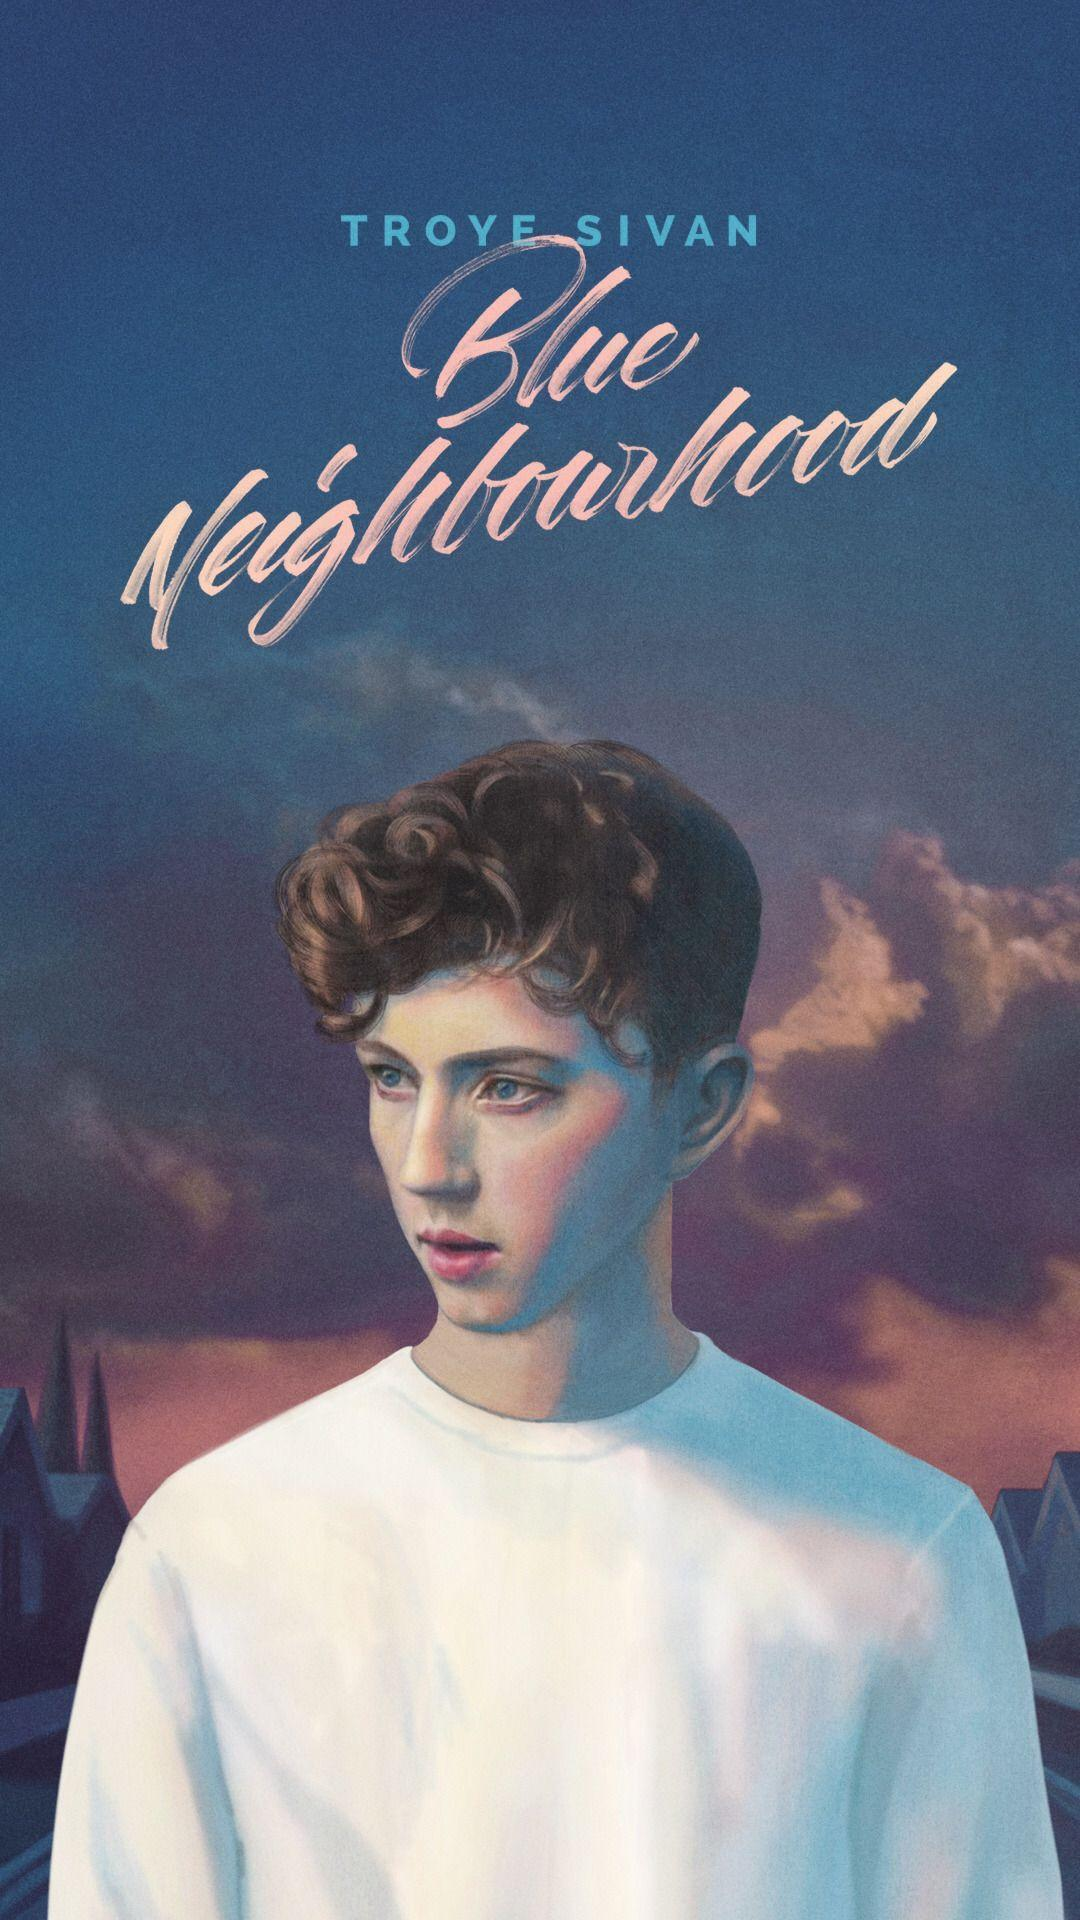 Troye sivan wallpapers wallpaper cave for Cover wallpaper